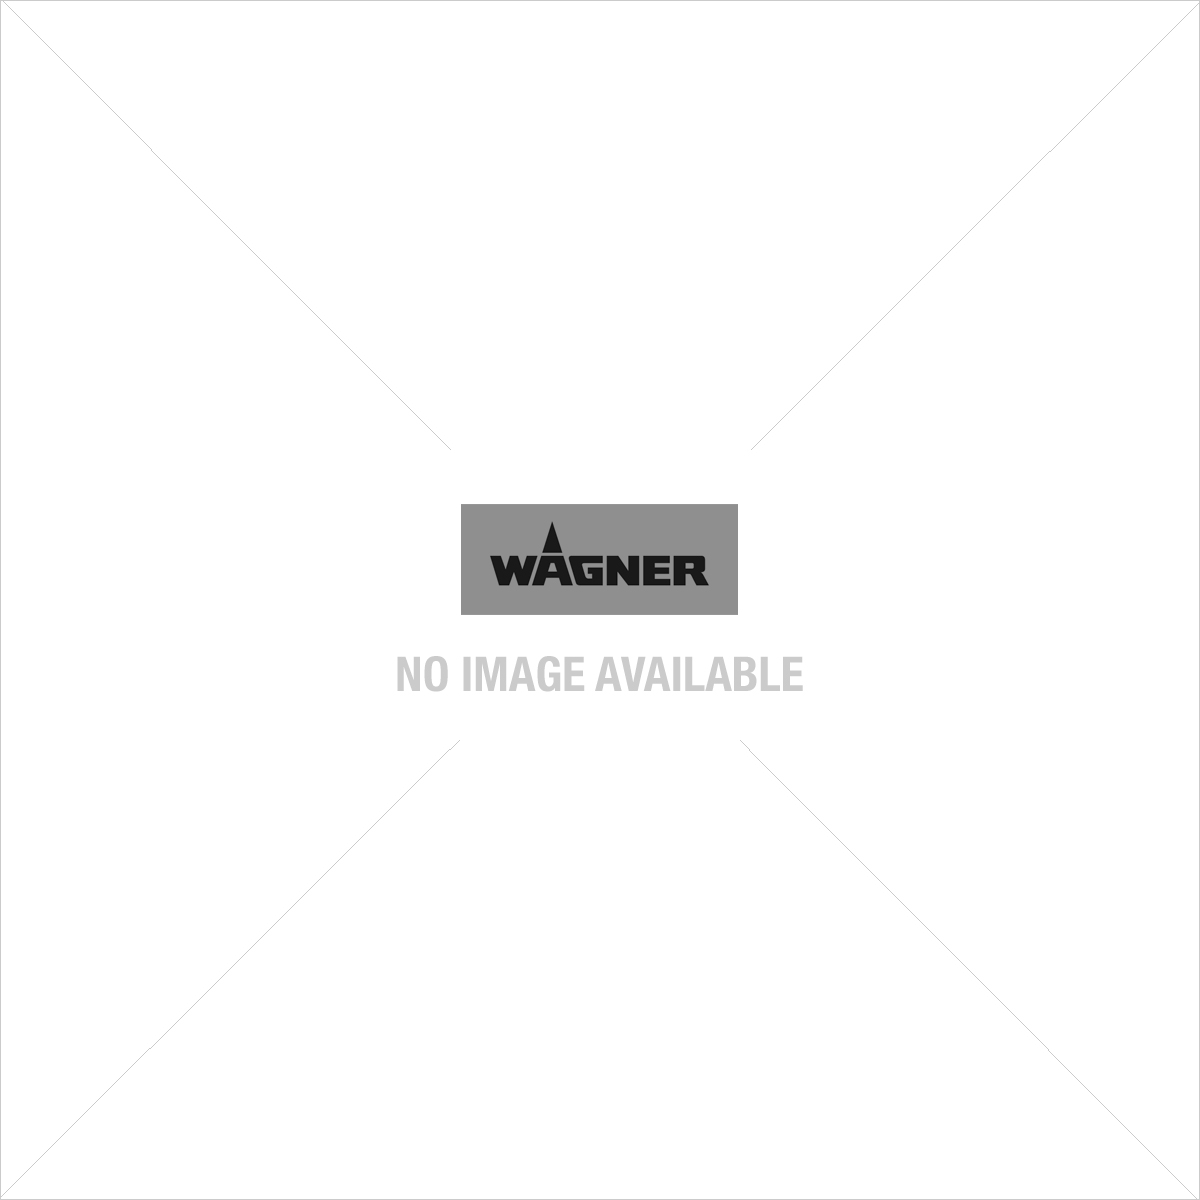 Wagner project pro 213 XT